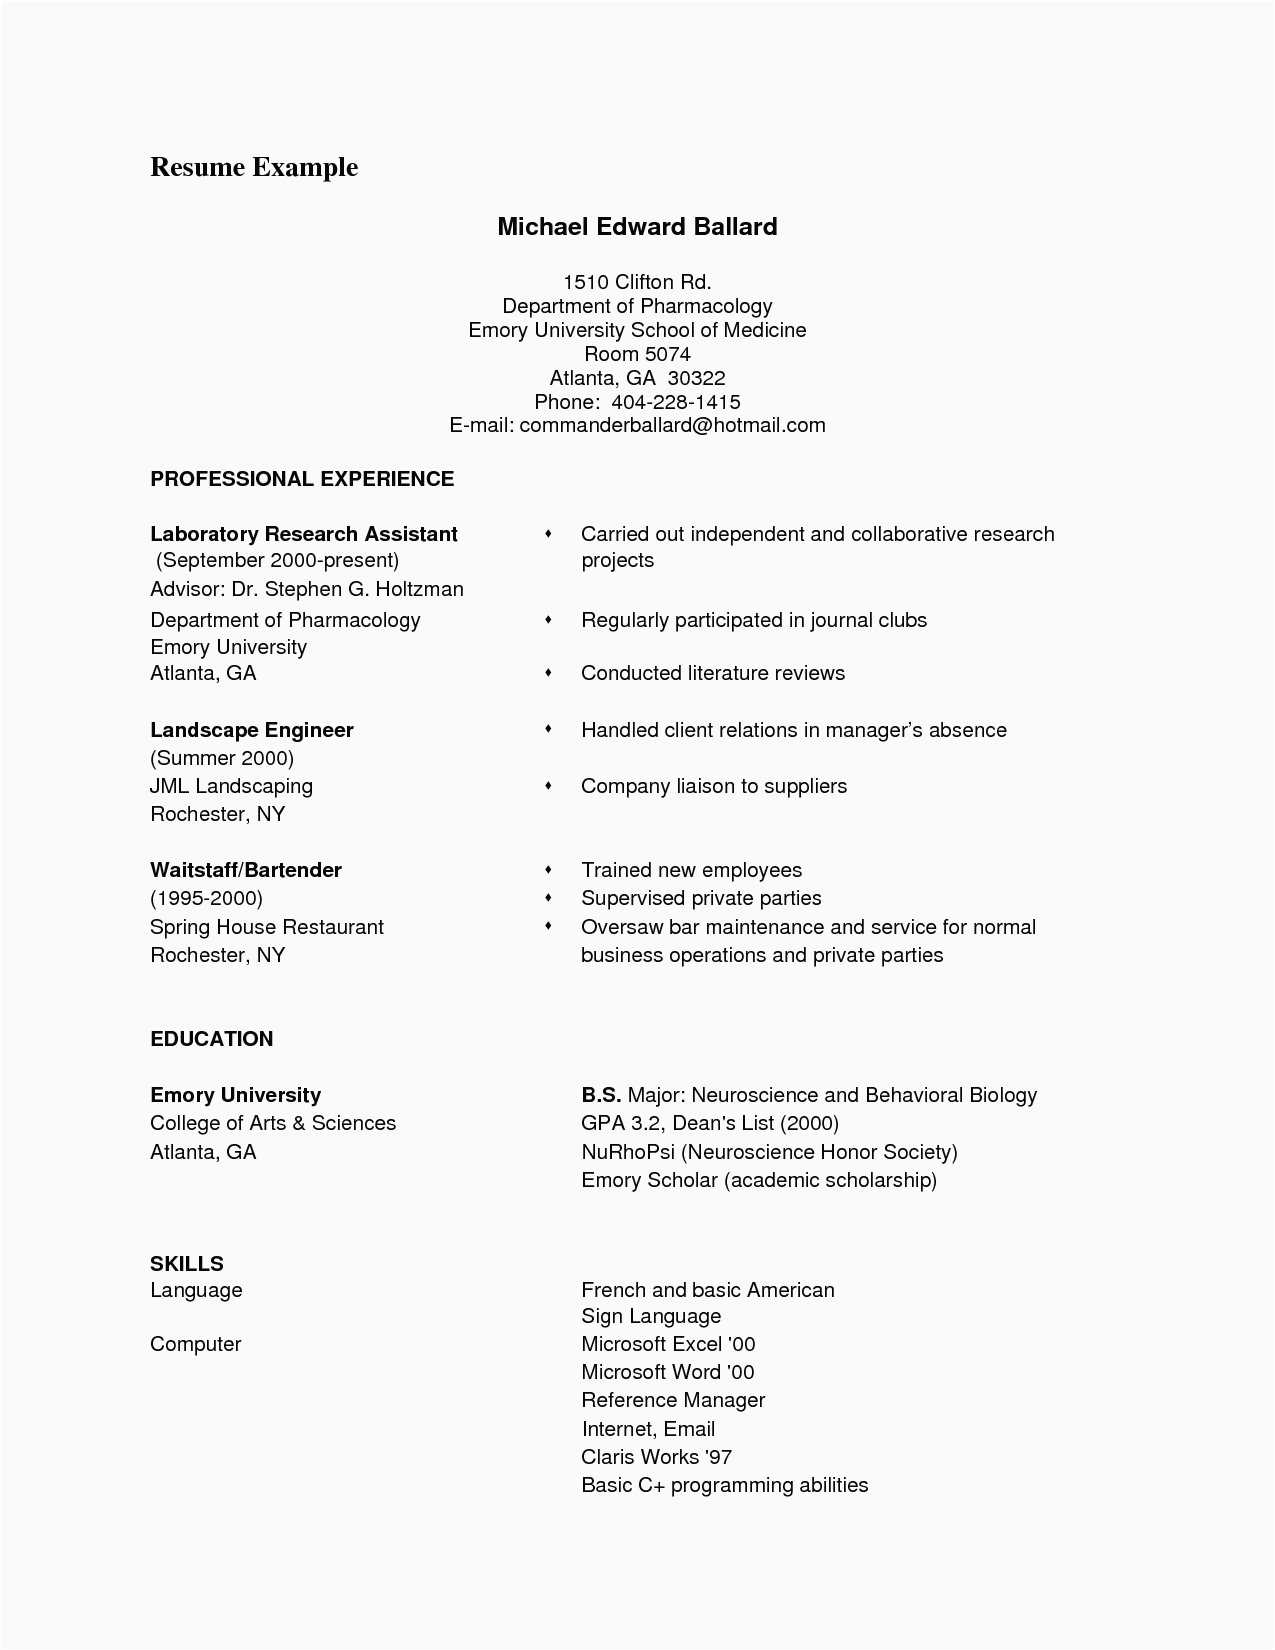 Attractive Resume Templates Free Download - 29 Best Powerpoint themes Simple